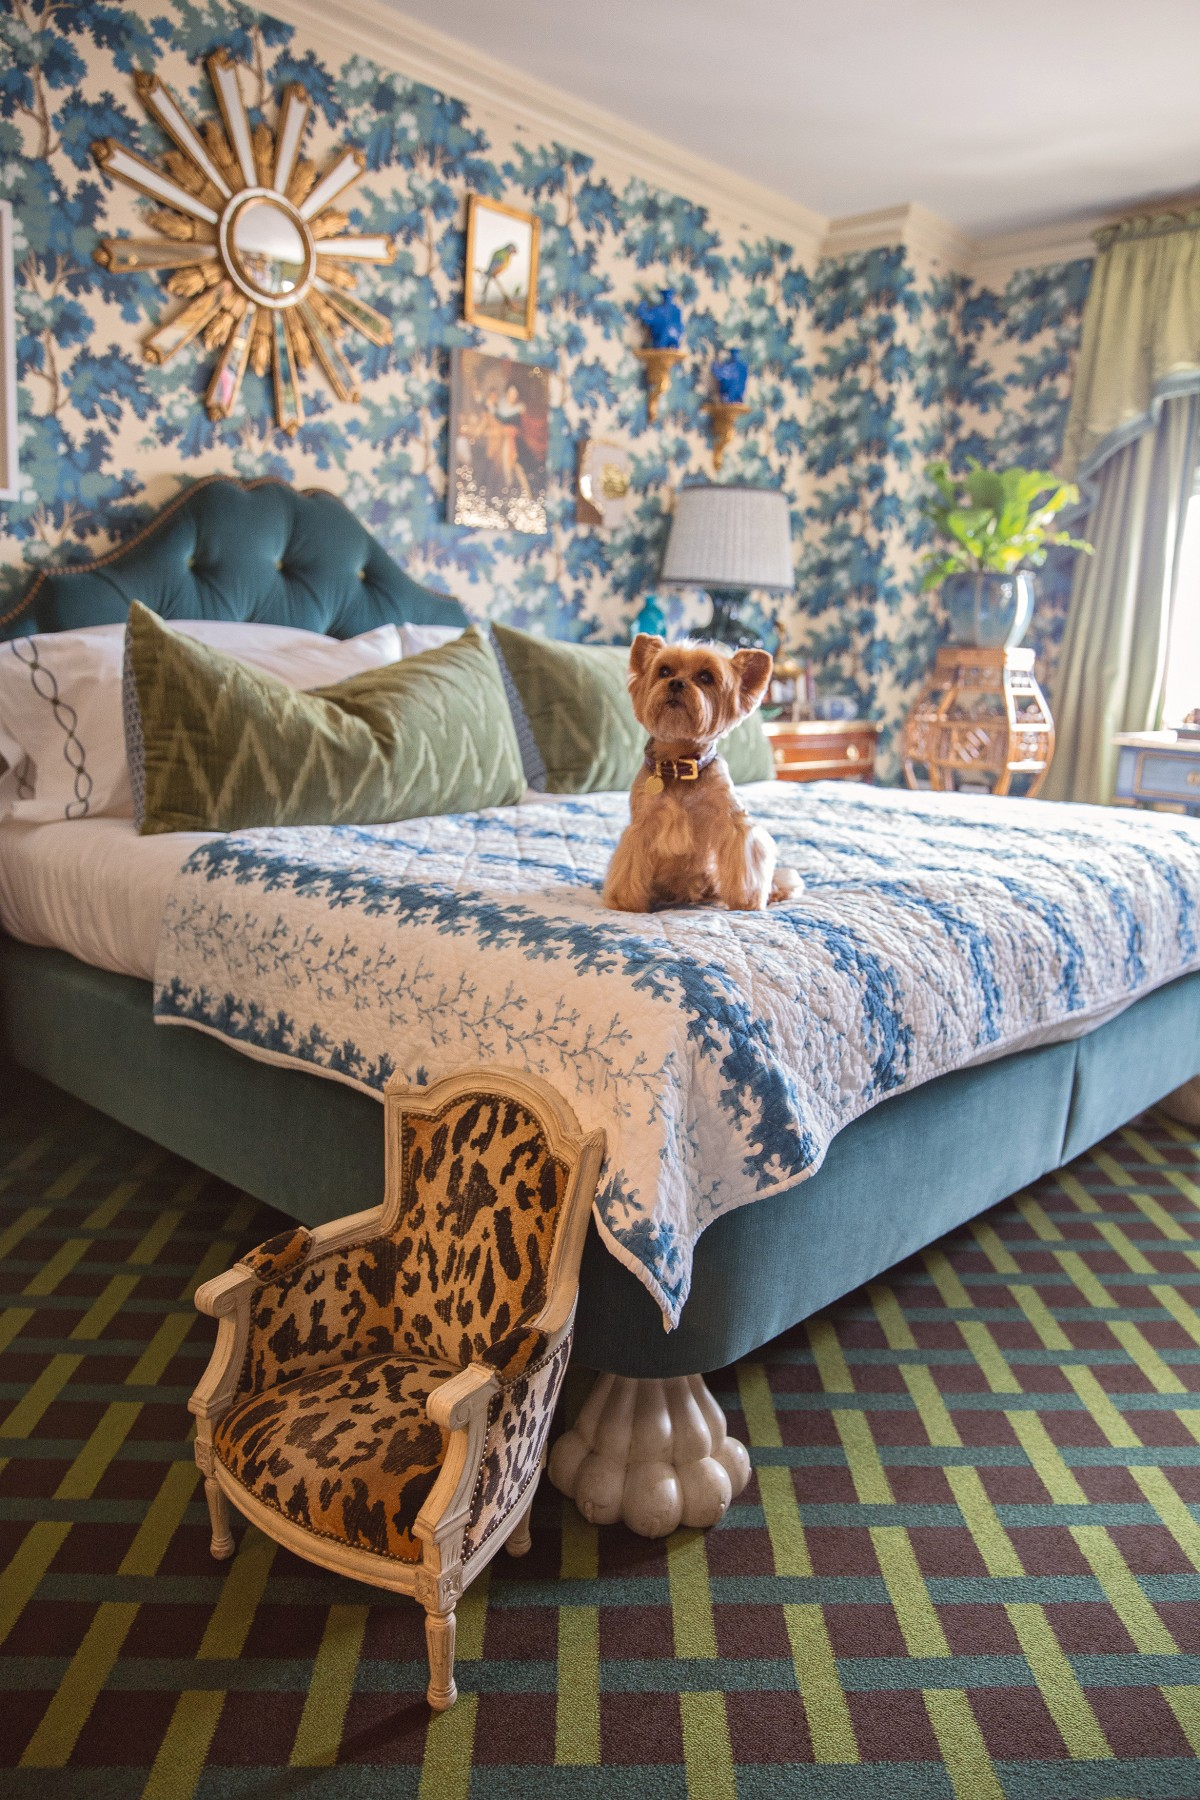 Dog-Friendly Design (and Designers) - Flower Magazine on retirement dogs, law dogs, school dogs, new york dogs, home defense dogs, home security dogs, food dogs, health dogs, baby dogs, pets dogs, animals dogs,